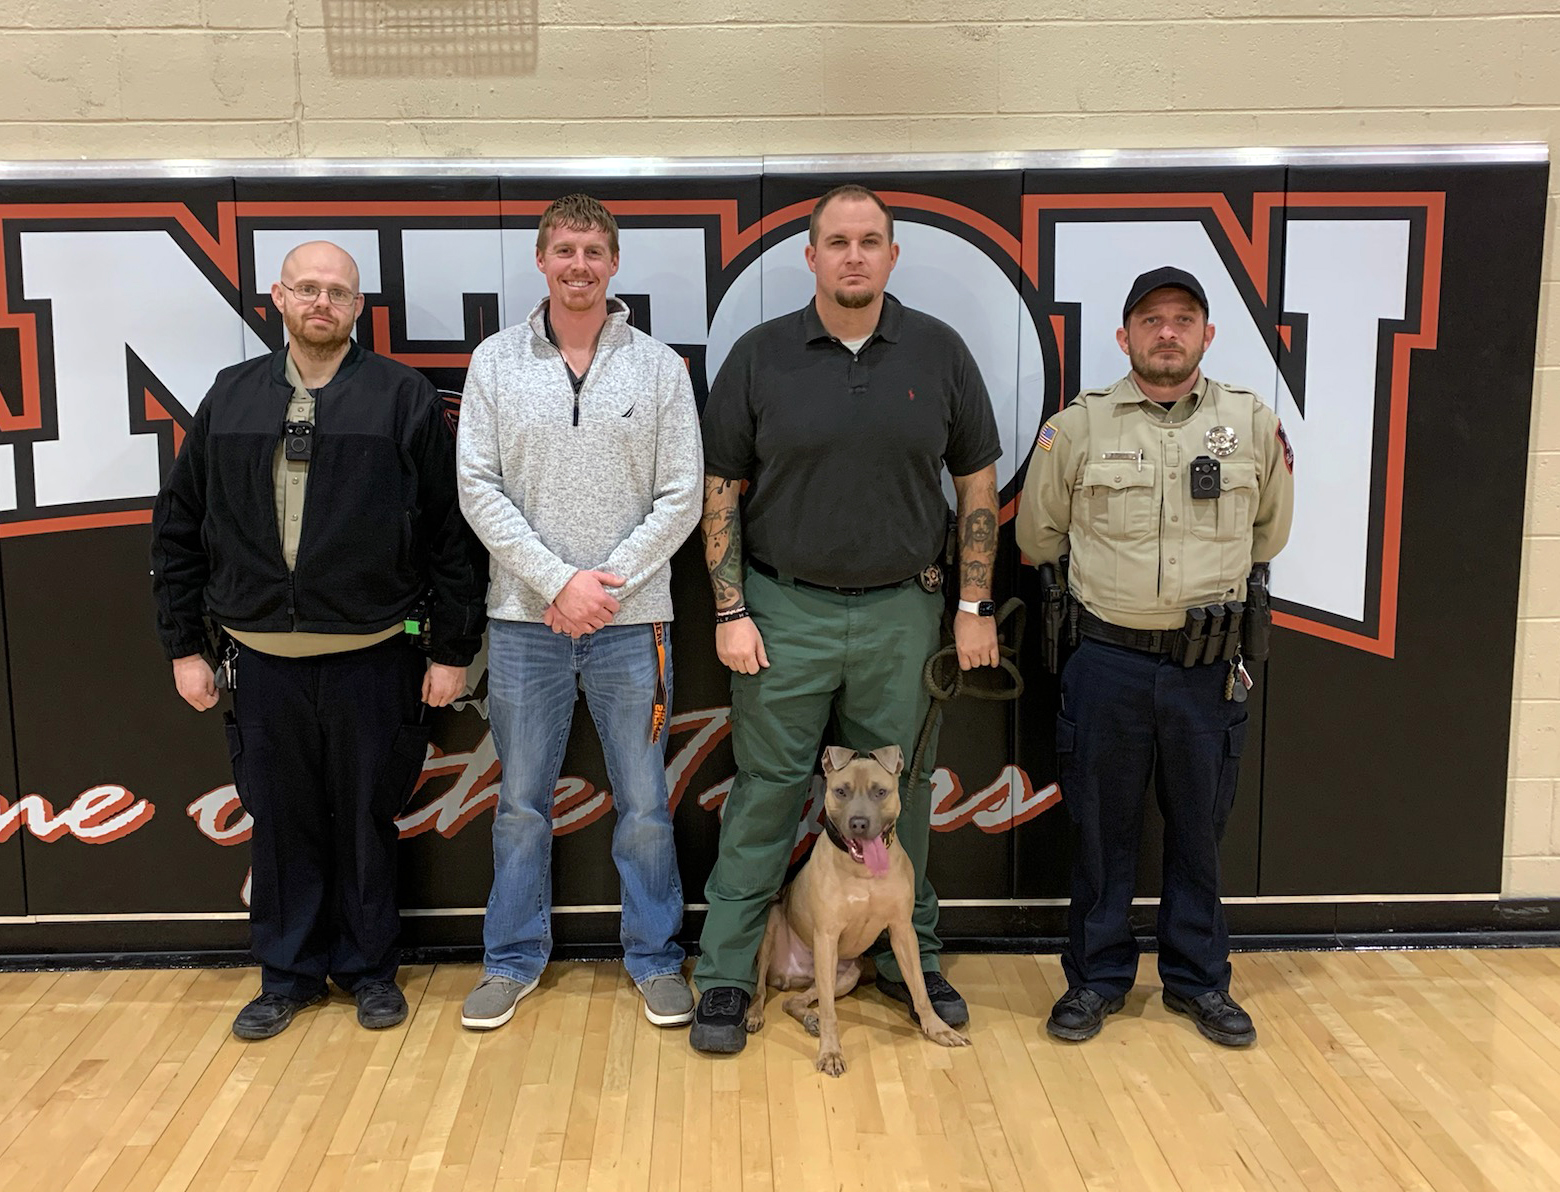 Blaine County Sheriff's Office visits area schools.